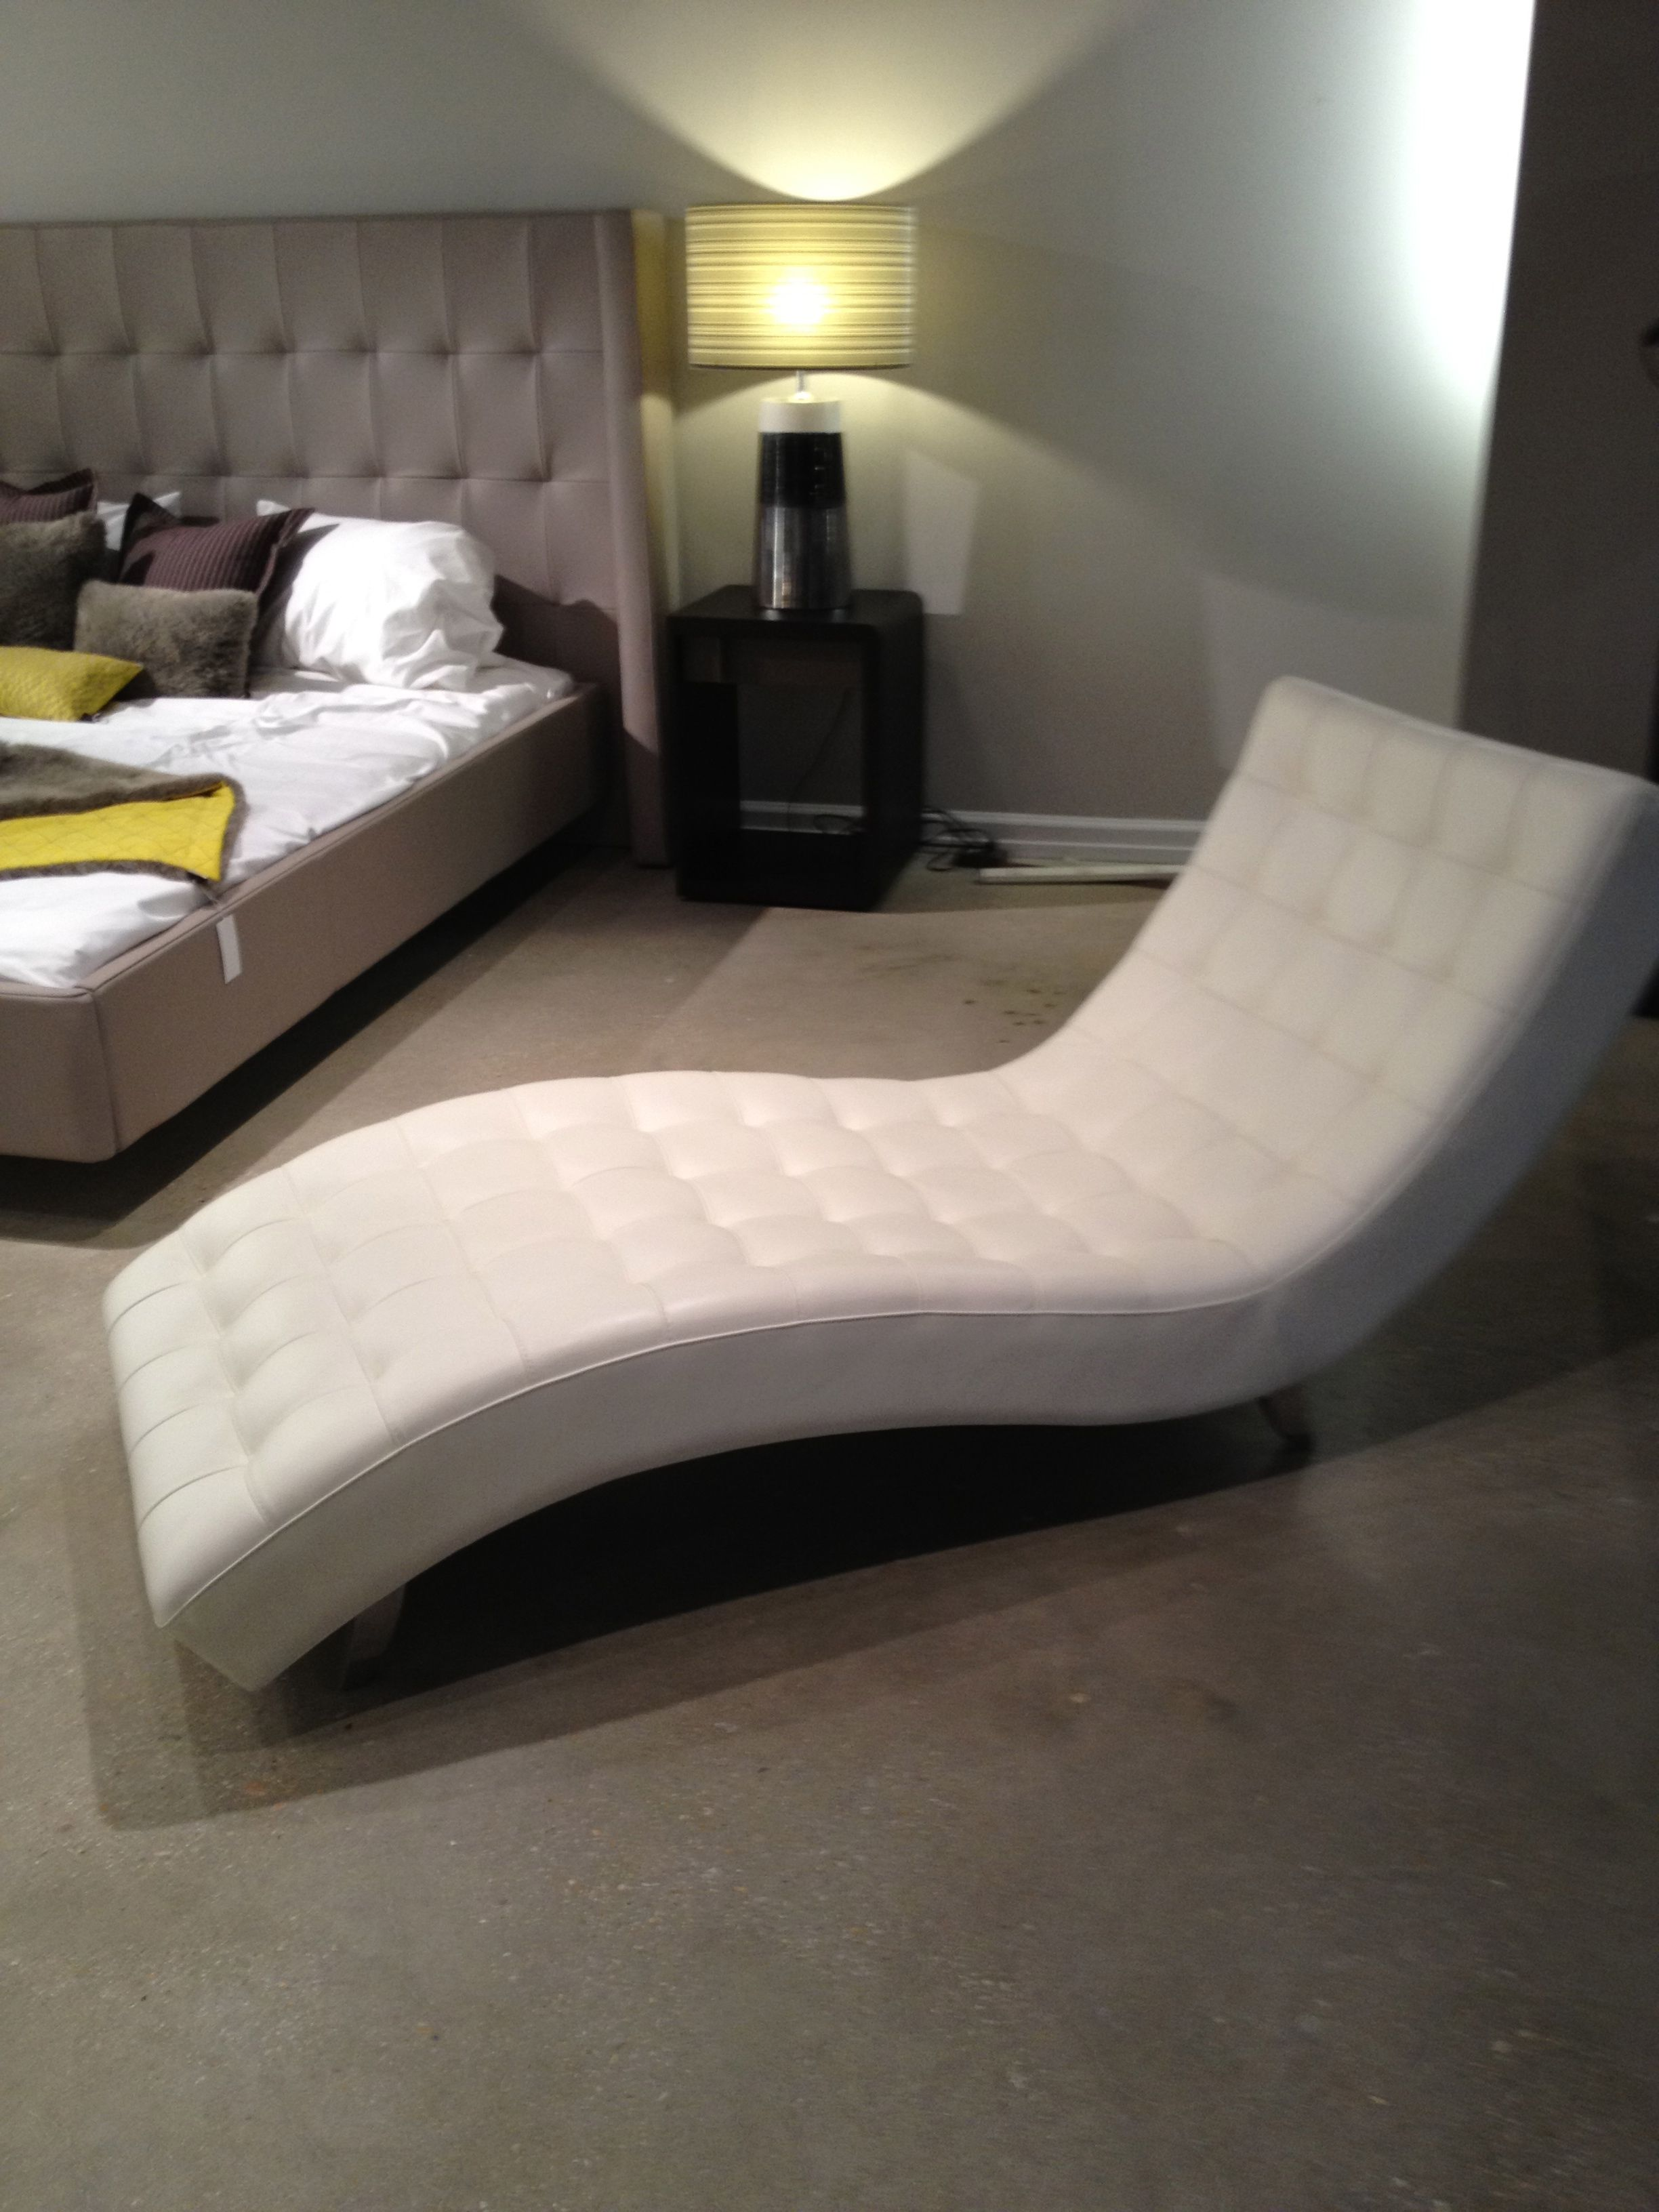 Chaise Lounge For Bedroom Bedroom Furniture